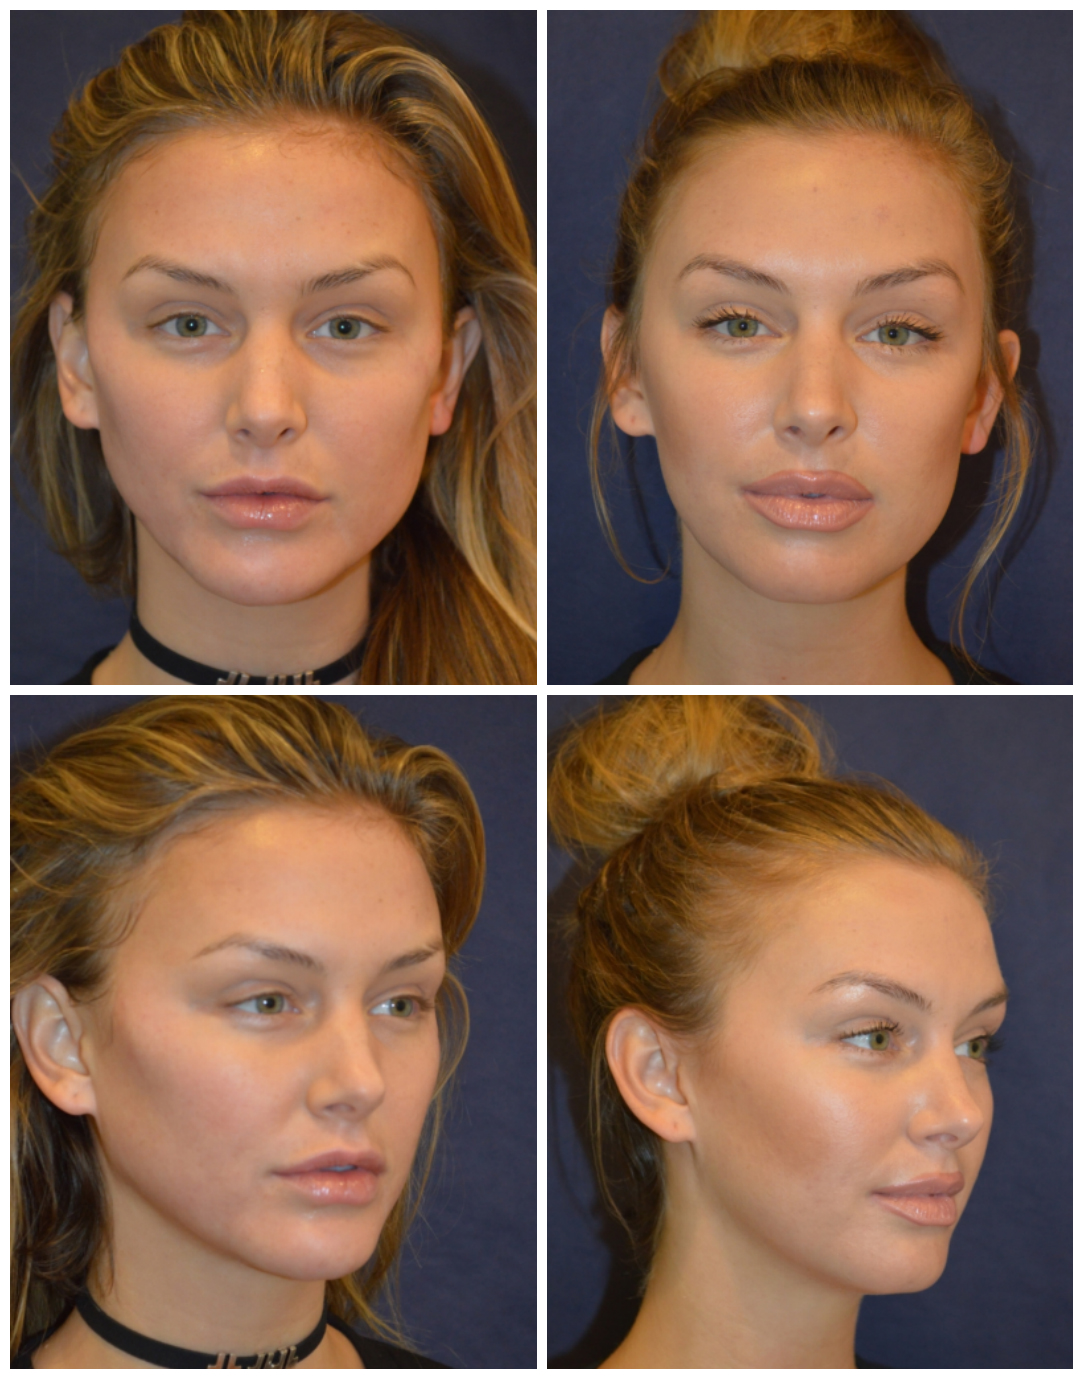 Lala Kent, before and after her treatments with Dr. Diamond.